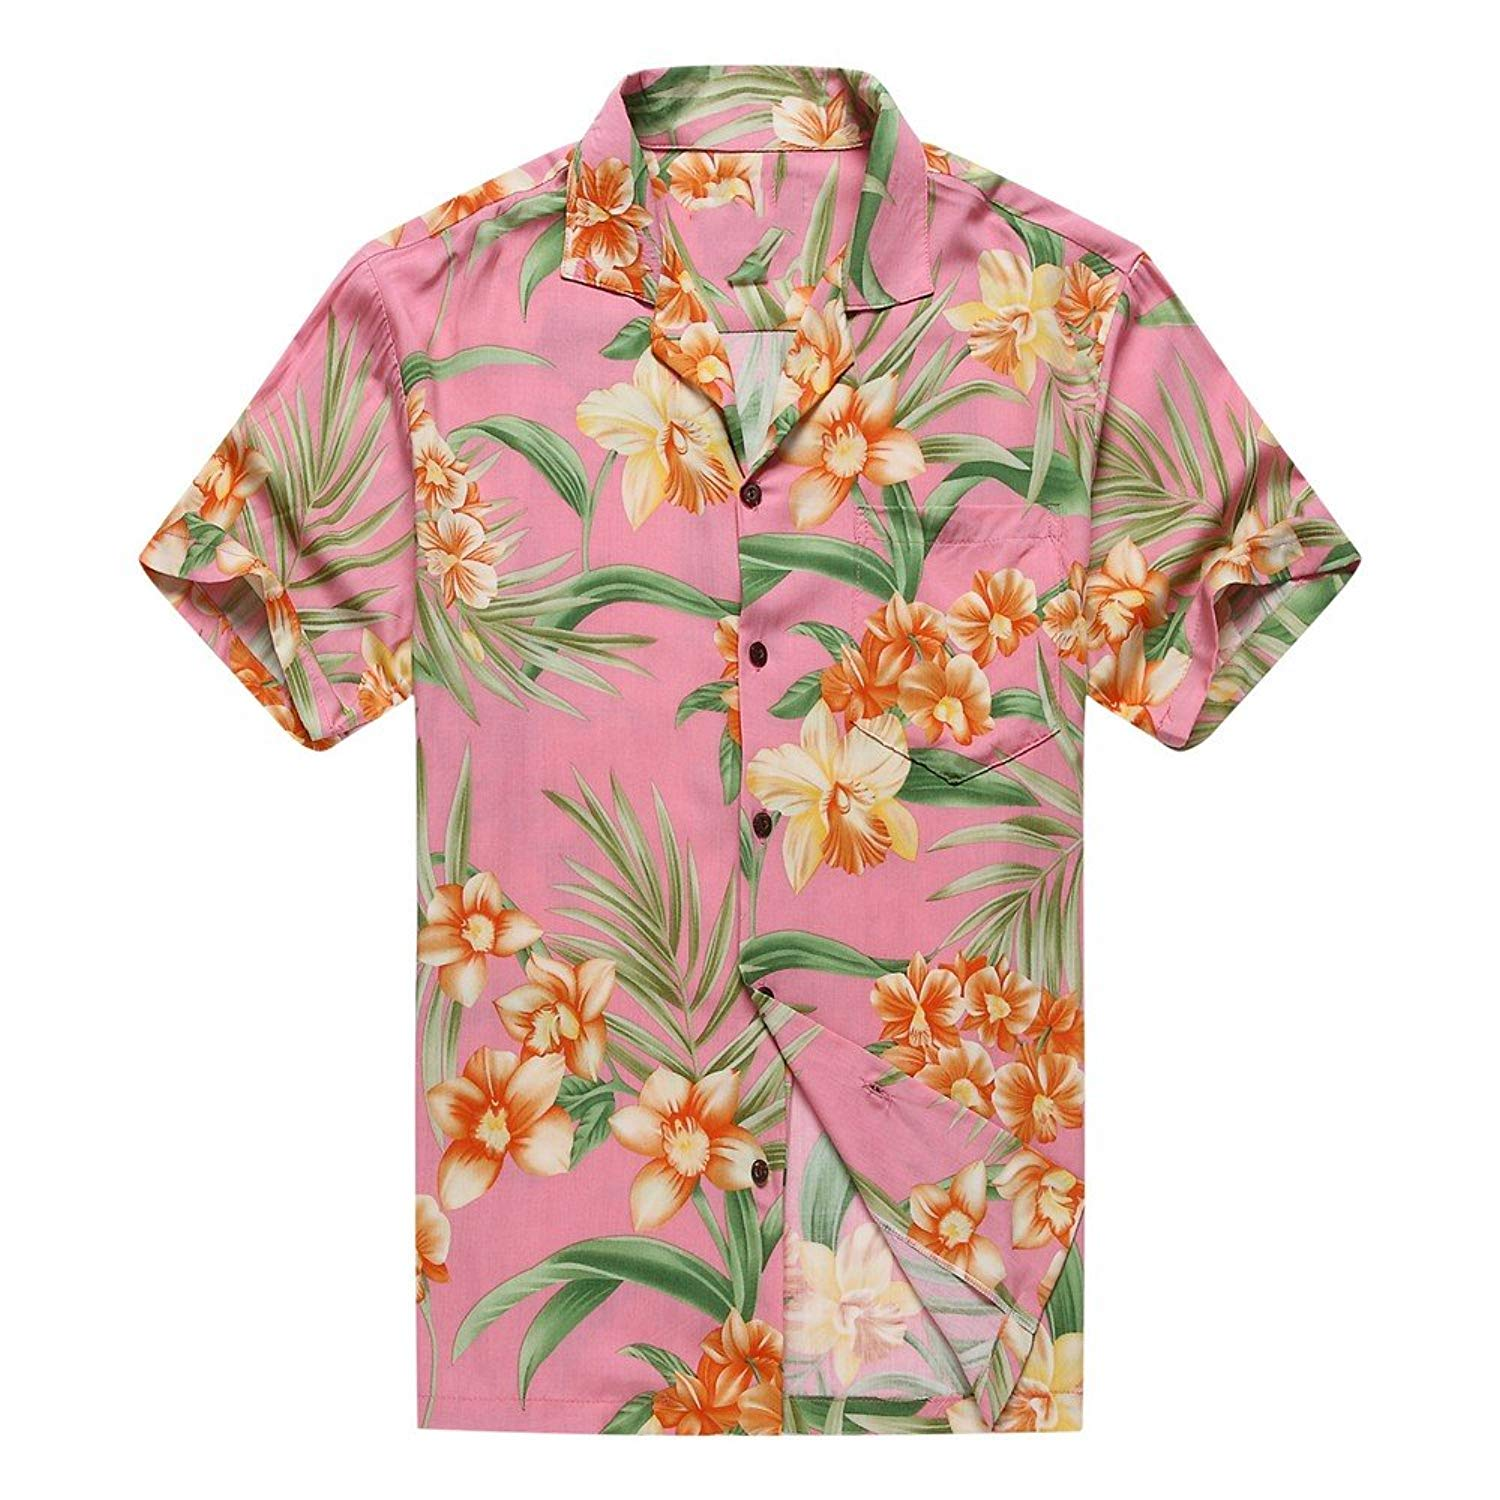 6c432b56 Get Quotations · Made In Hawaii Men's Hawaiian Shirt Aloha Shirt Orange  Floral With Green Leaf In Pink